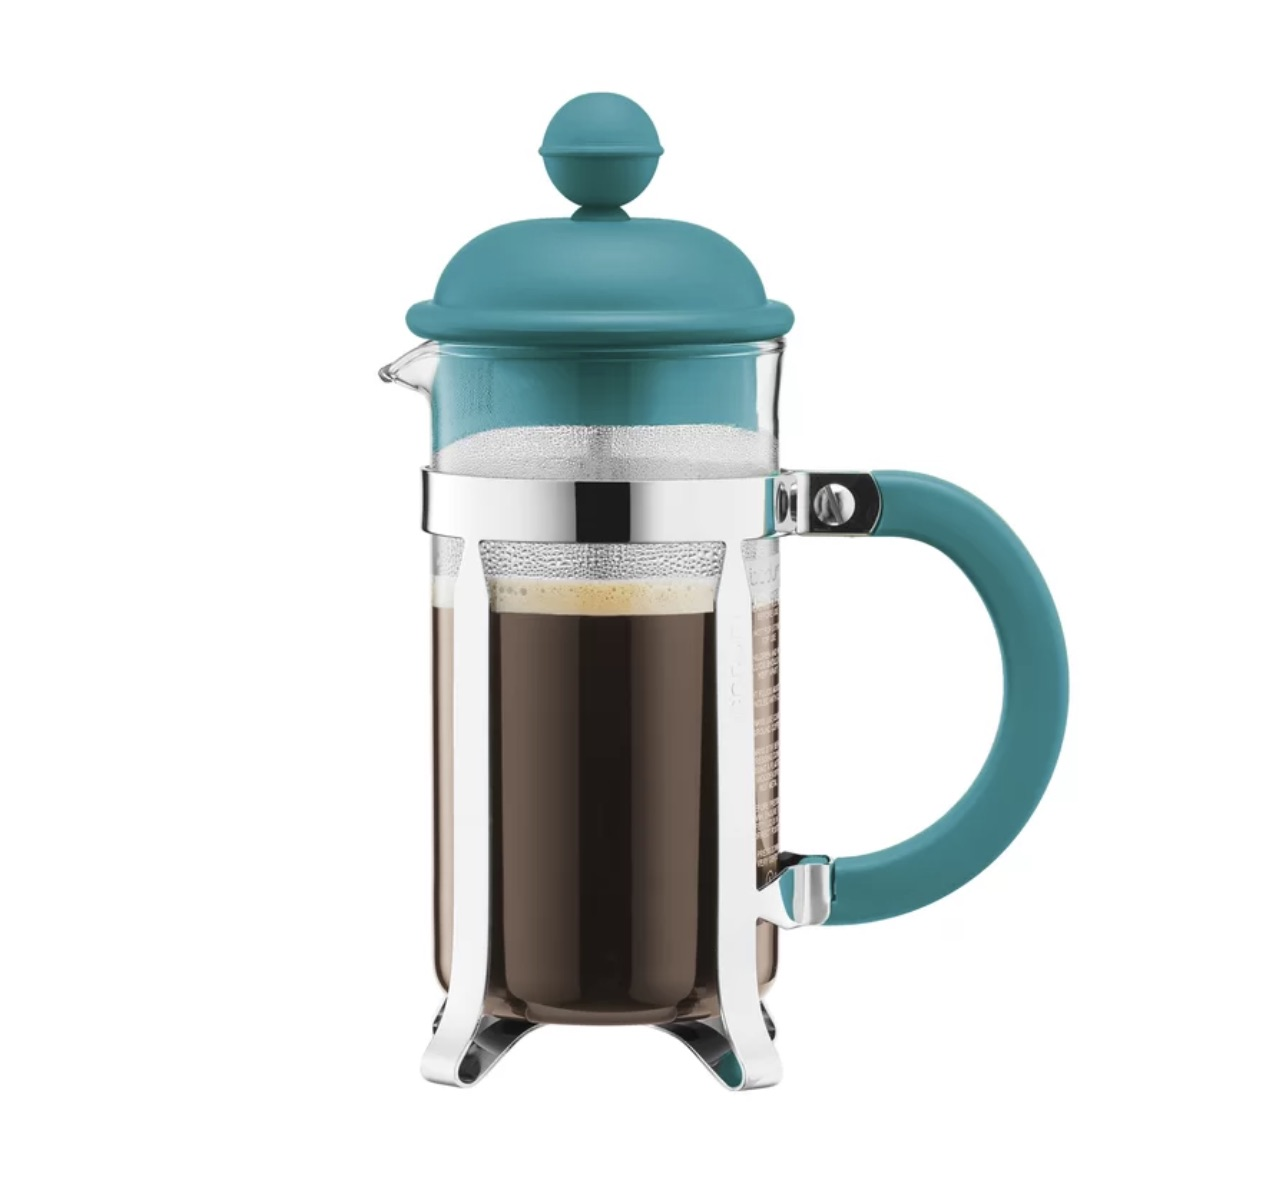 Cool affordable gifts under $15: Bodum 4-cup French Press